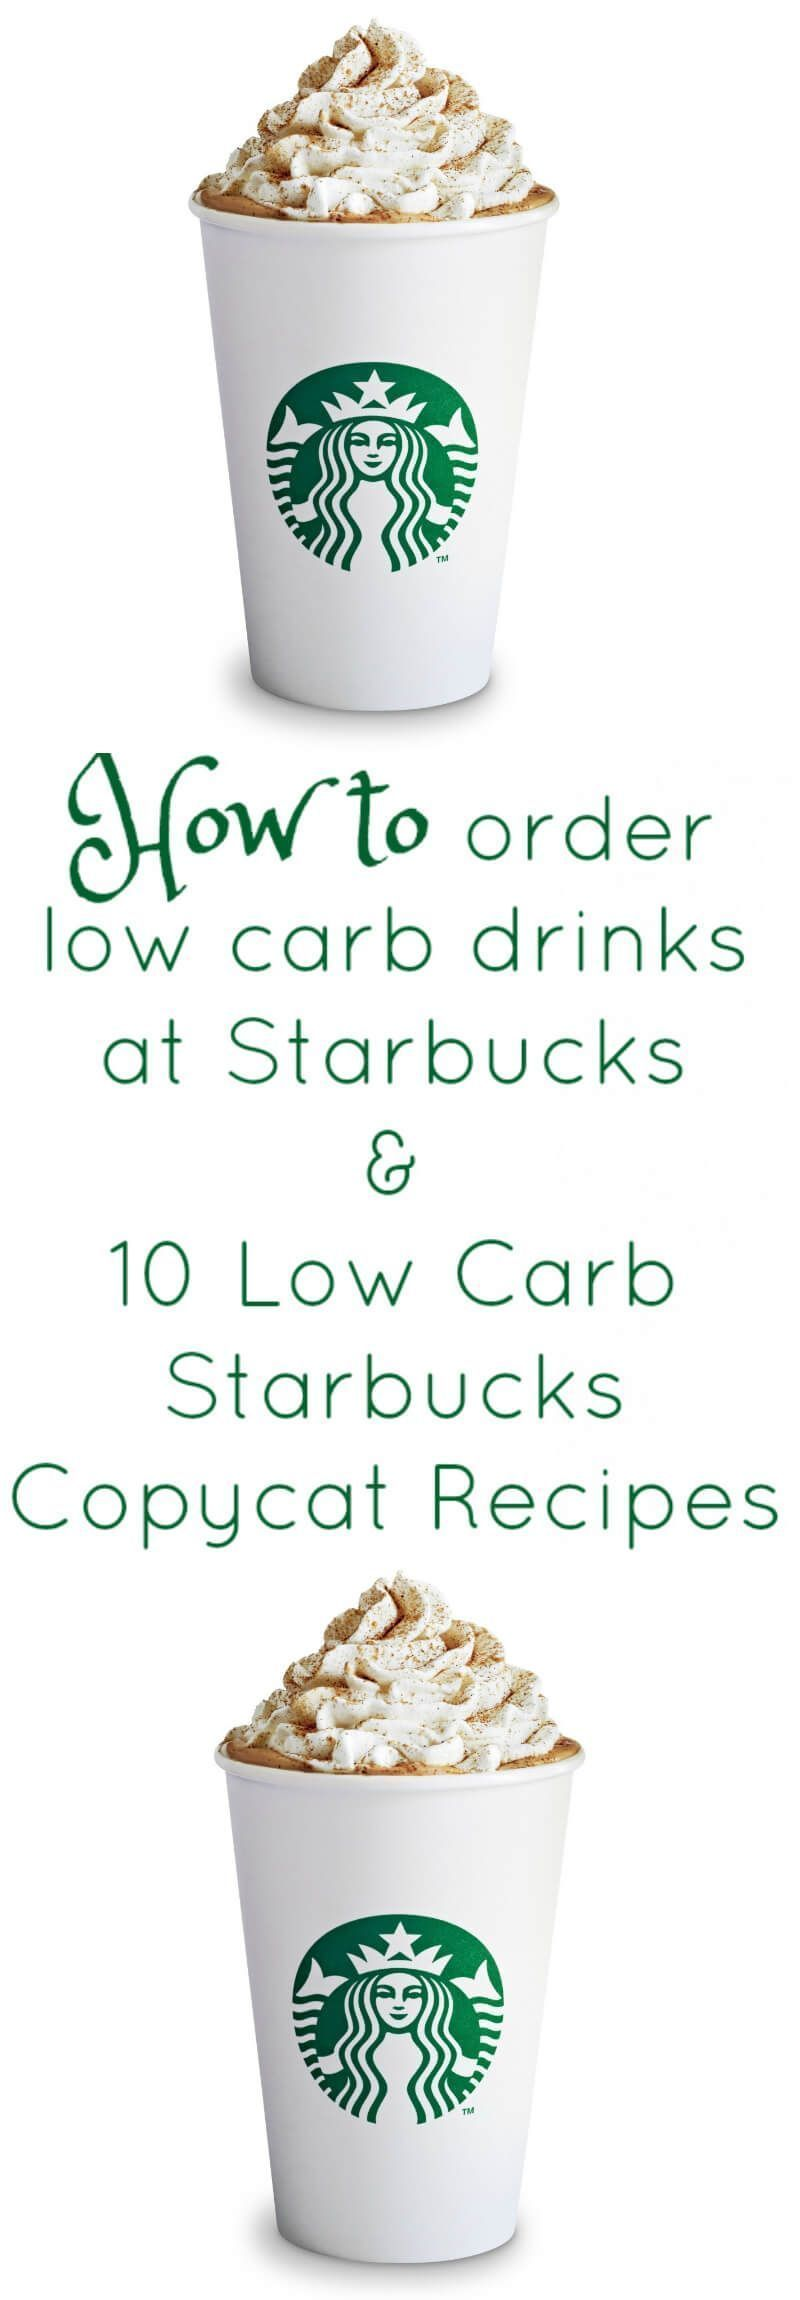 to Order Low Carb  Keto at Starbucks and 10 Low Carb Starbucks Copycat RecipesHow to Order Low Carb  Keto at Starbucks and 10 Low Carb Starbucks Copycat Recipes to Order...